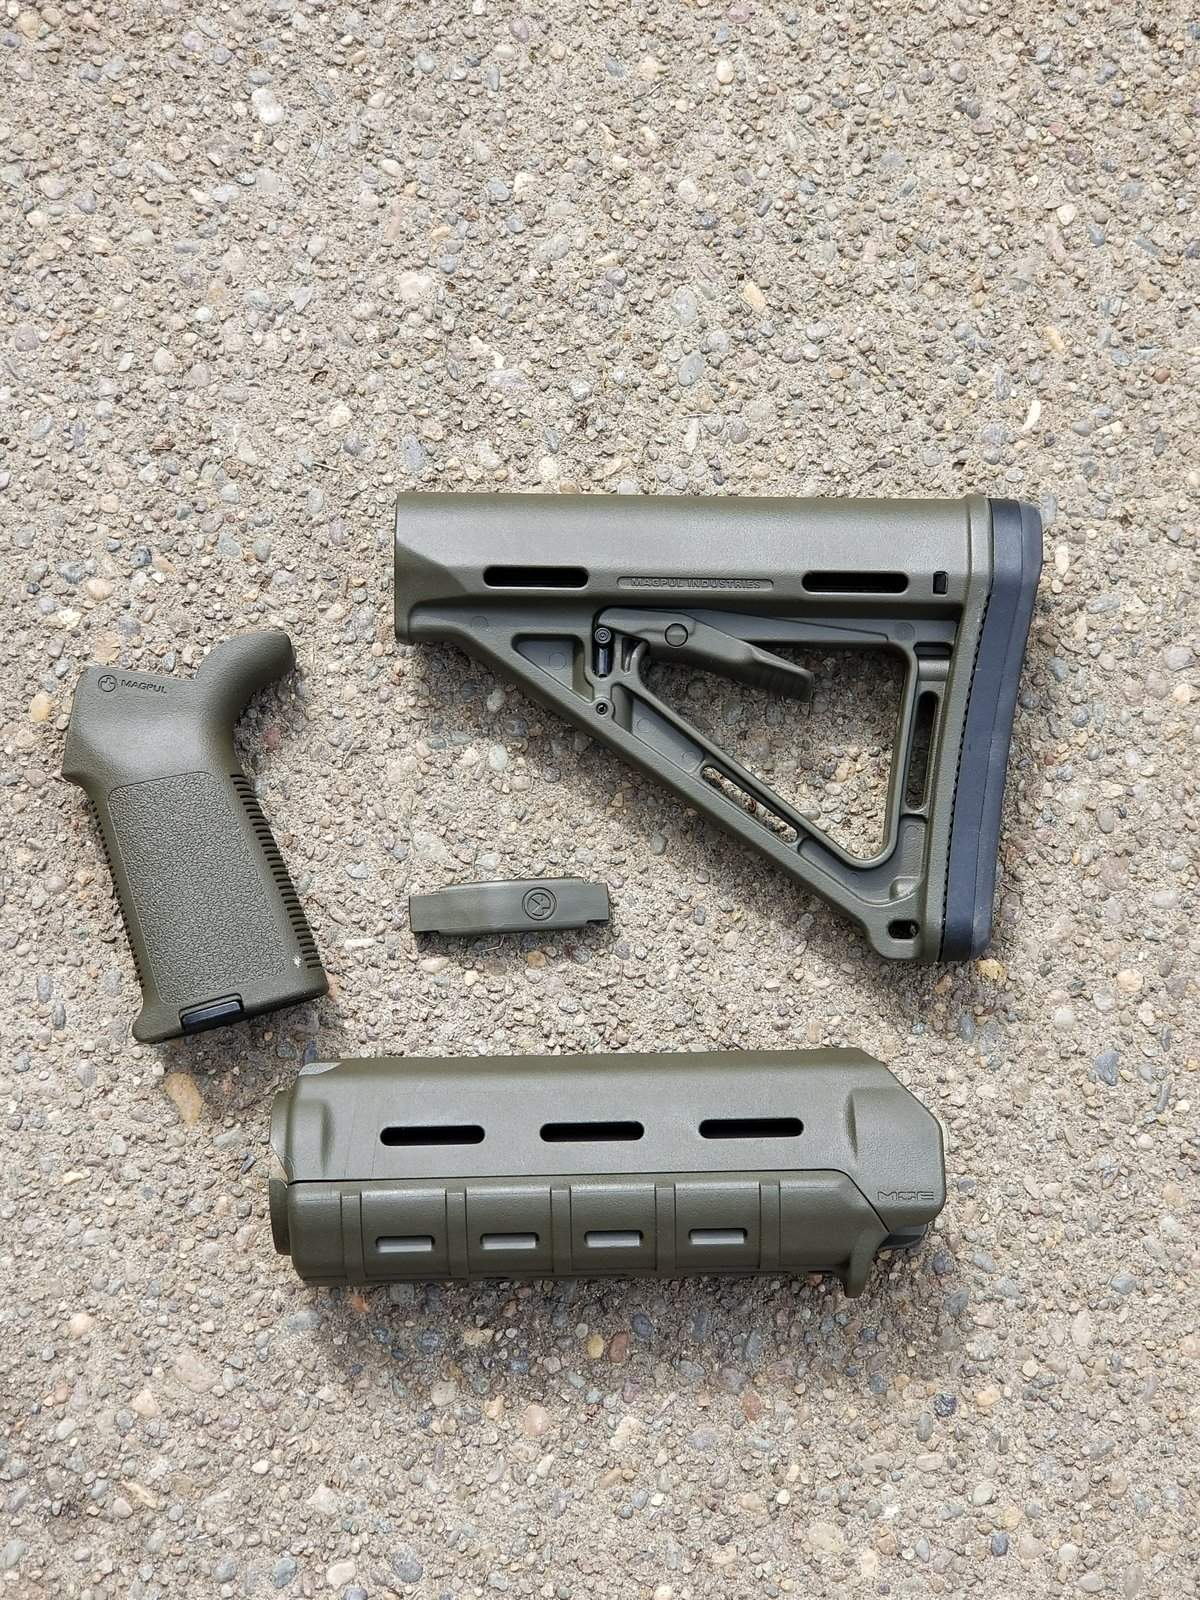 Wts Or Magpul Moe Odg Ar15 Furniture Kit Northwest Firearms